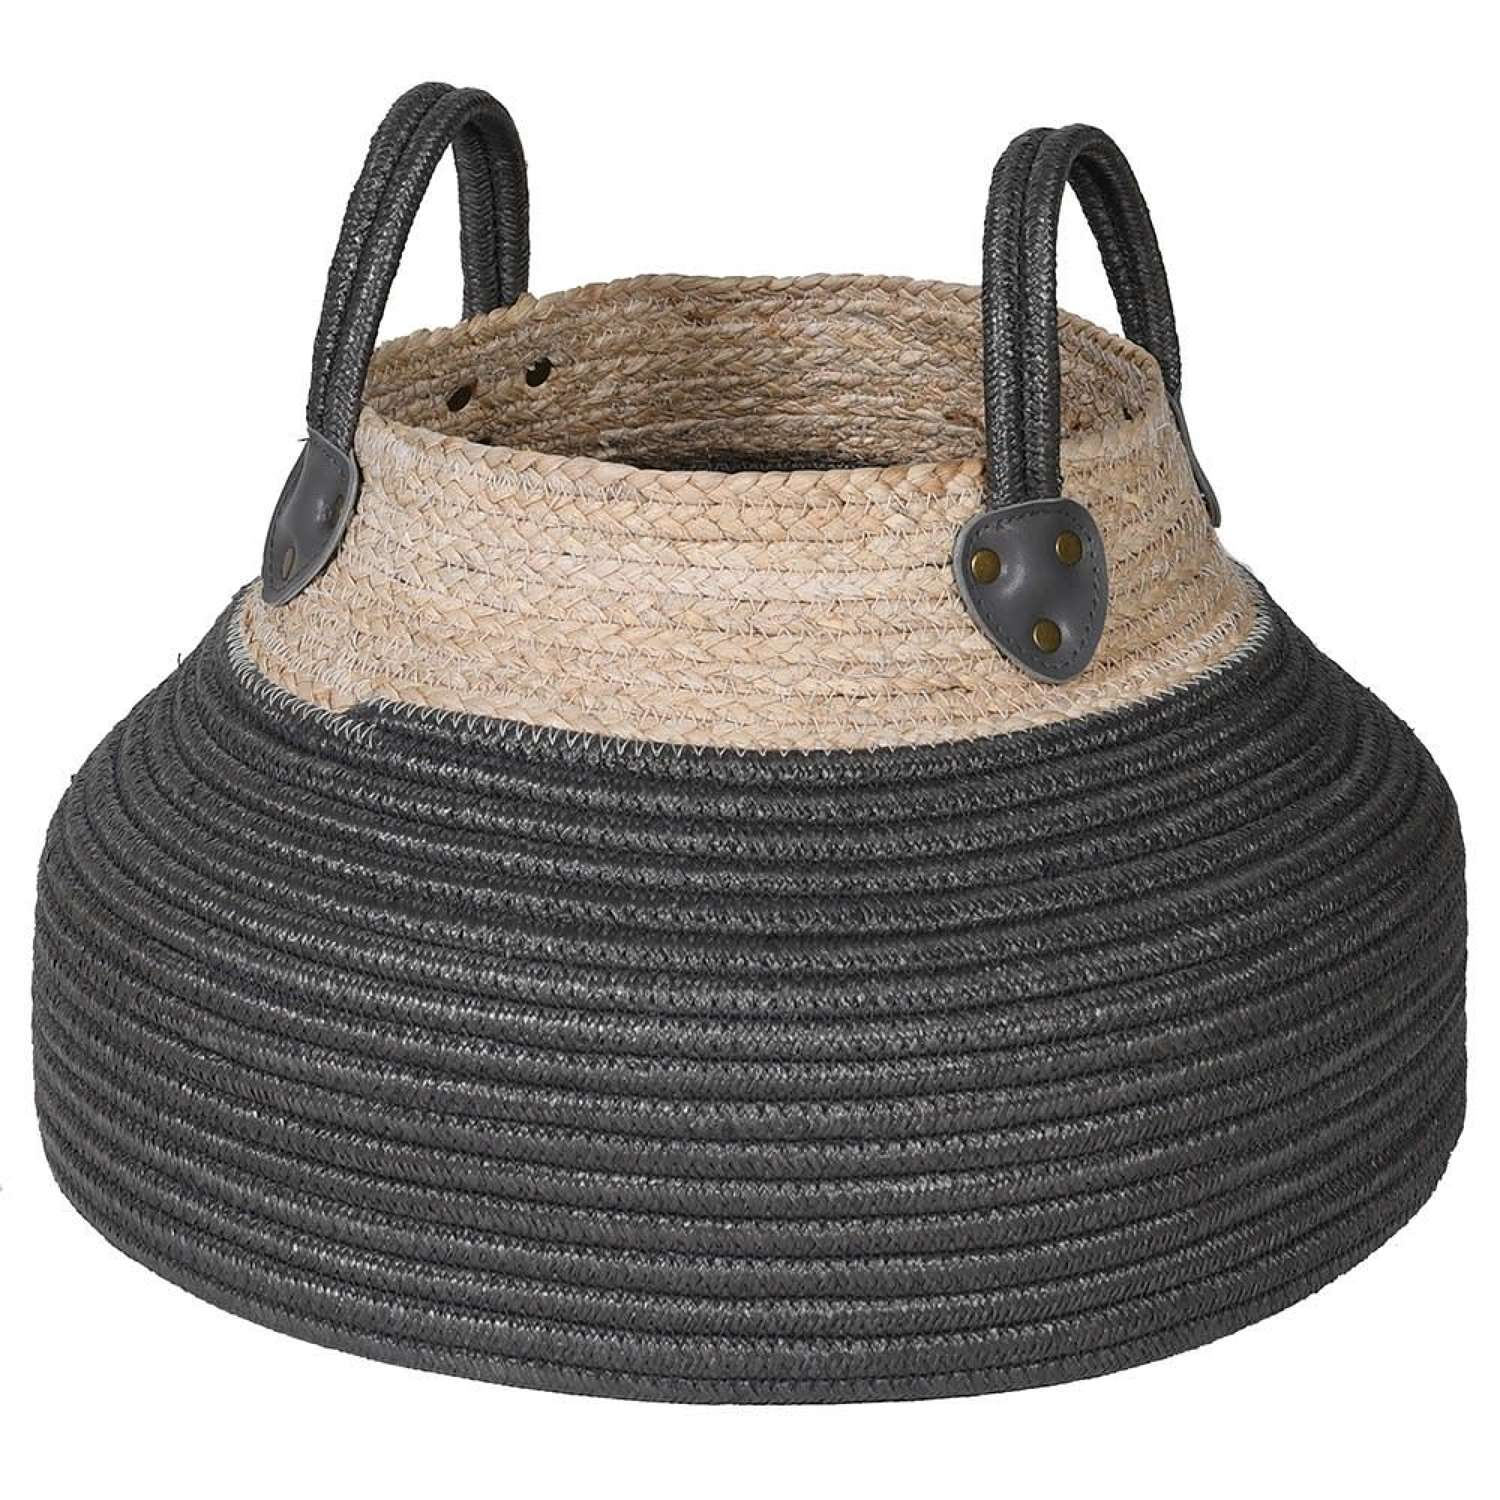 Two tone maize and rope coloured basket with handles